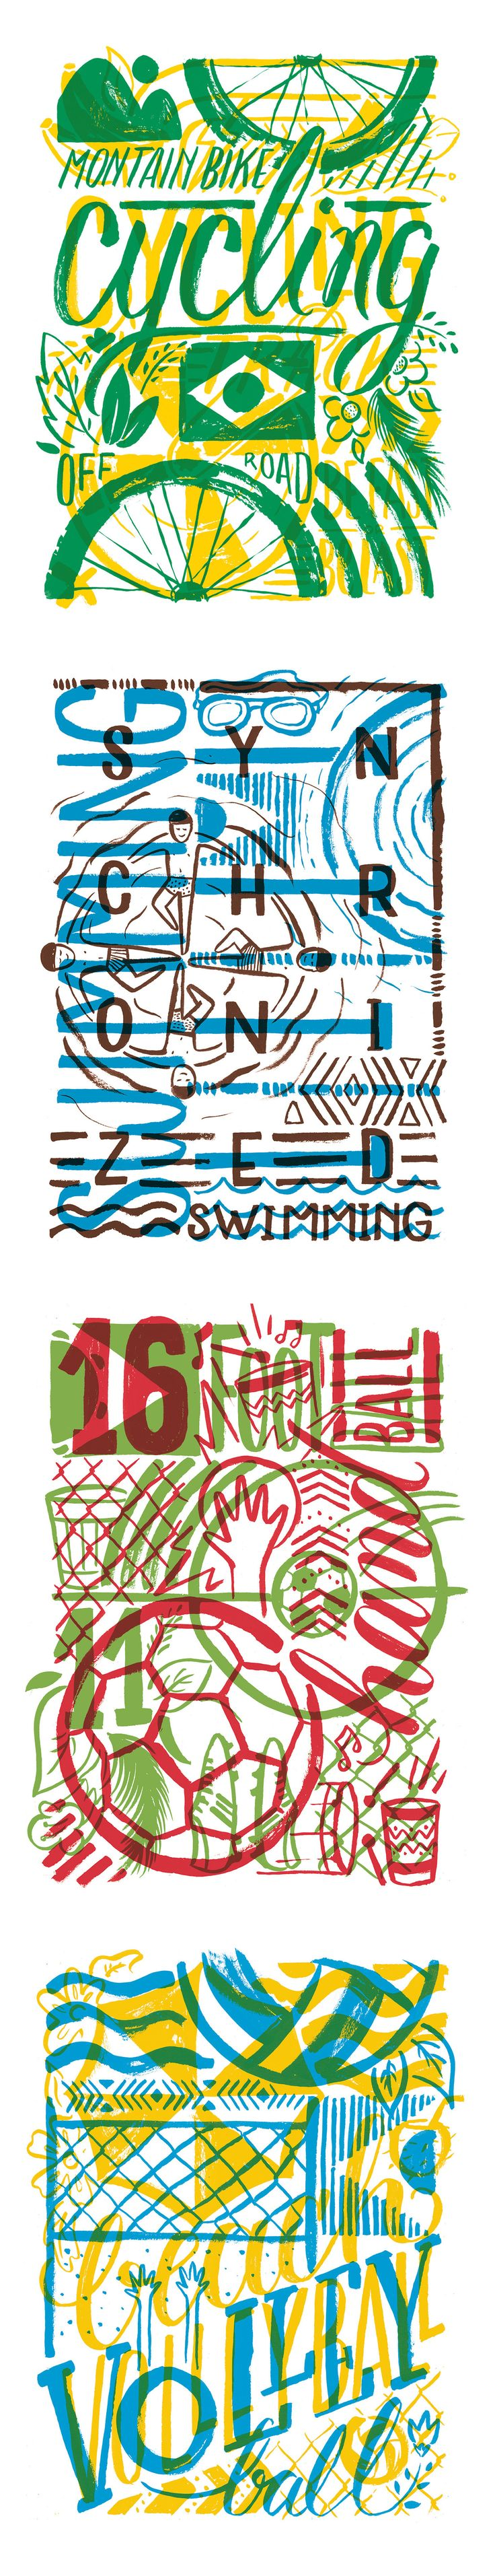 Illustrated graphics for WSGN inspired by 2016 Olympics in Rio.